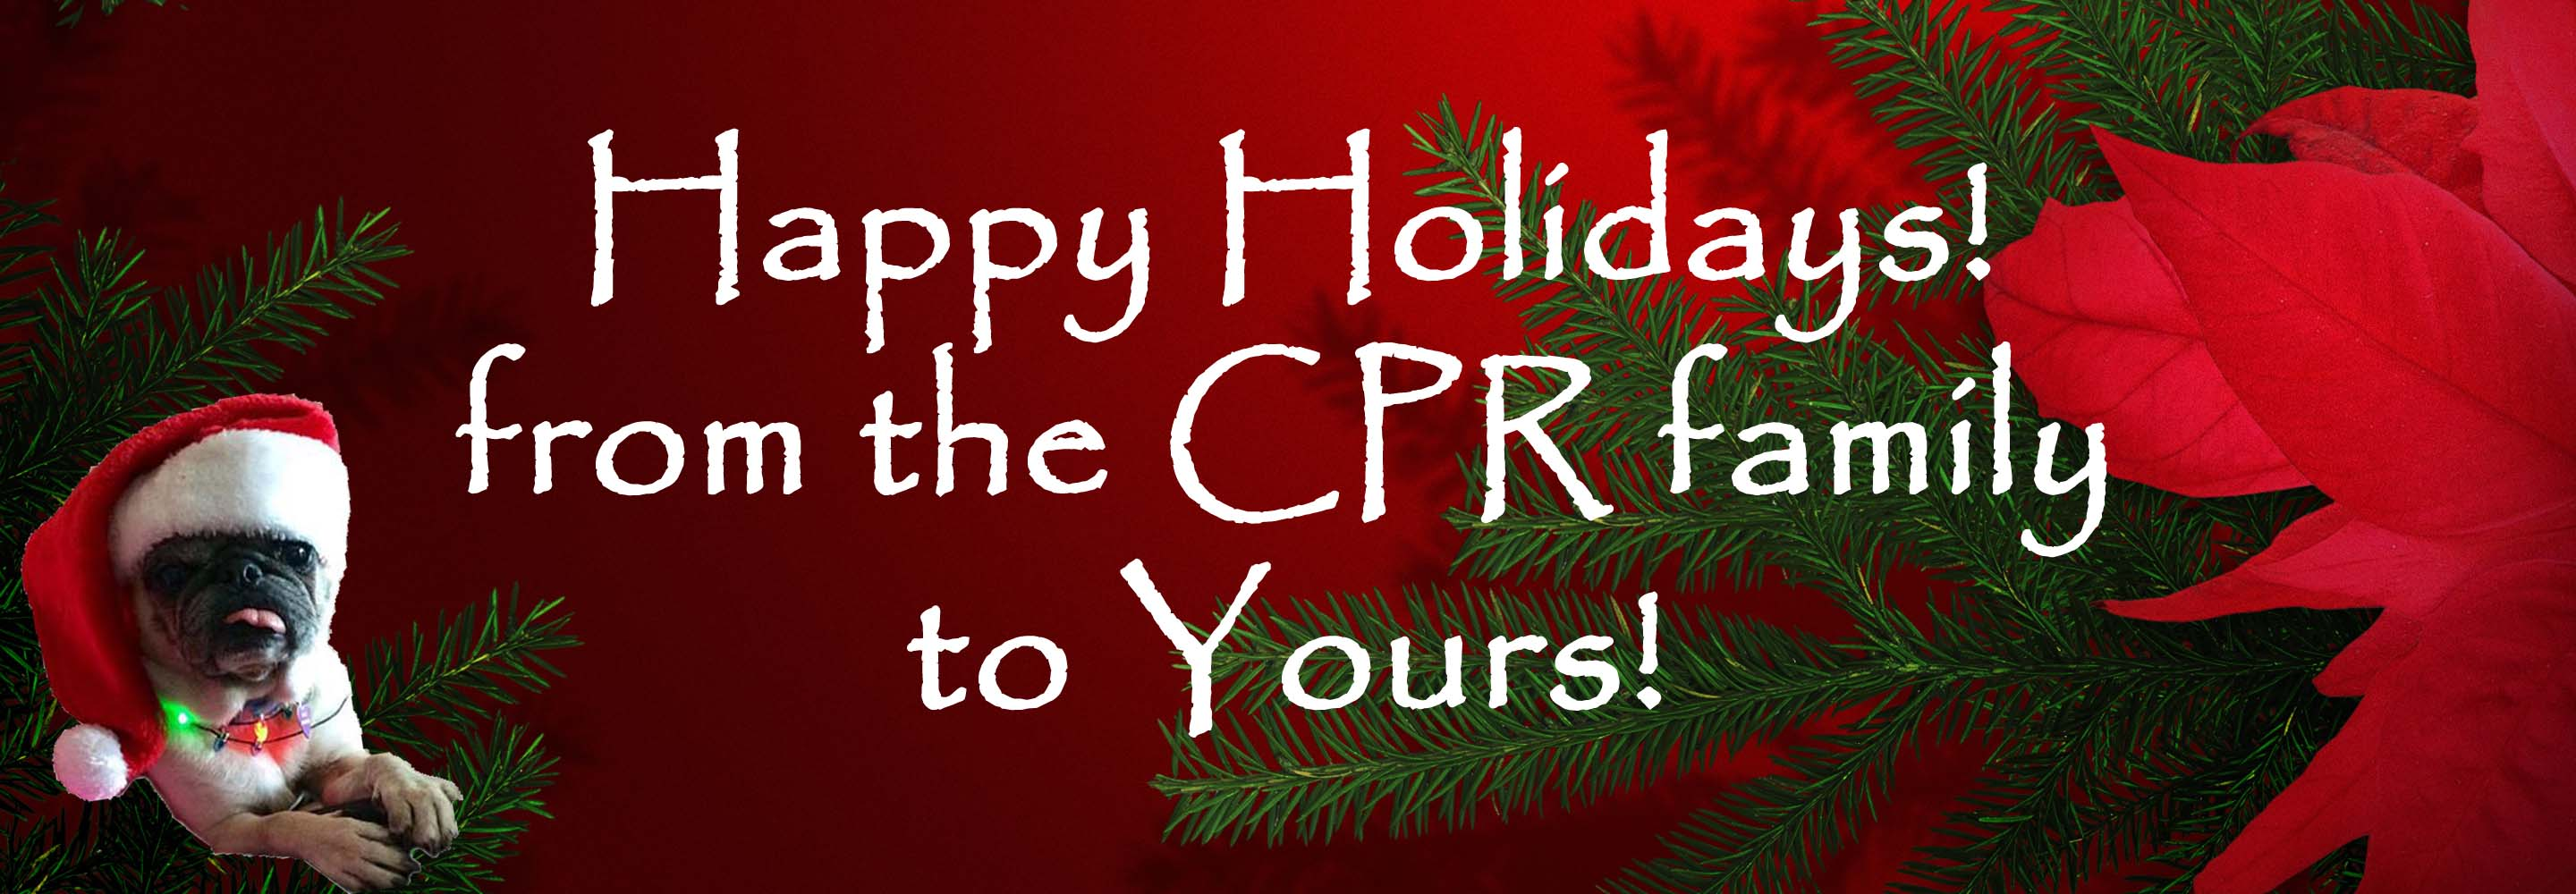 Happy Holidays! From the CPR Family to Yours!